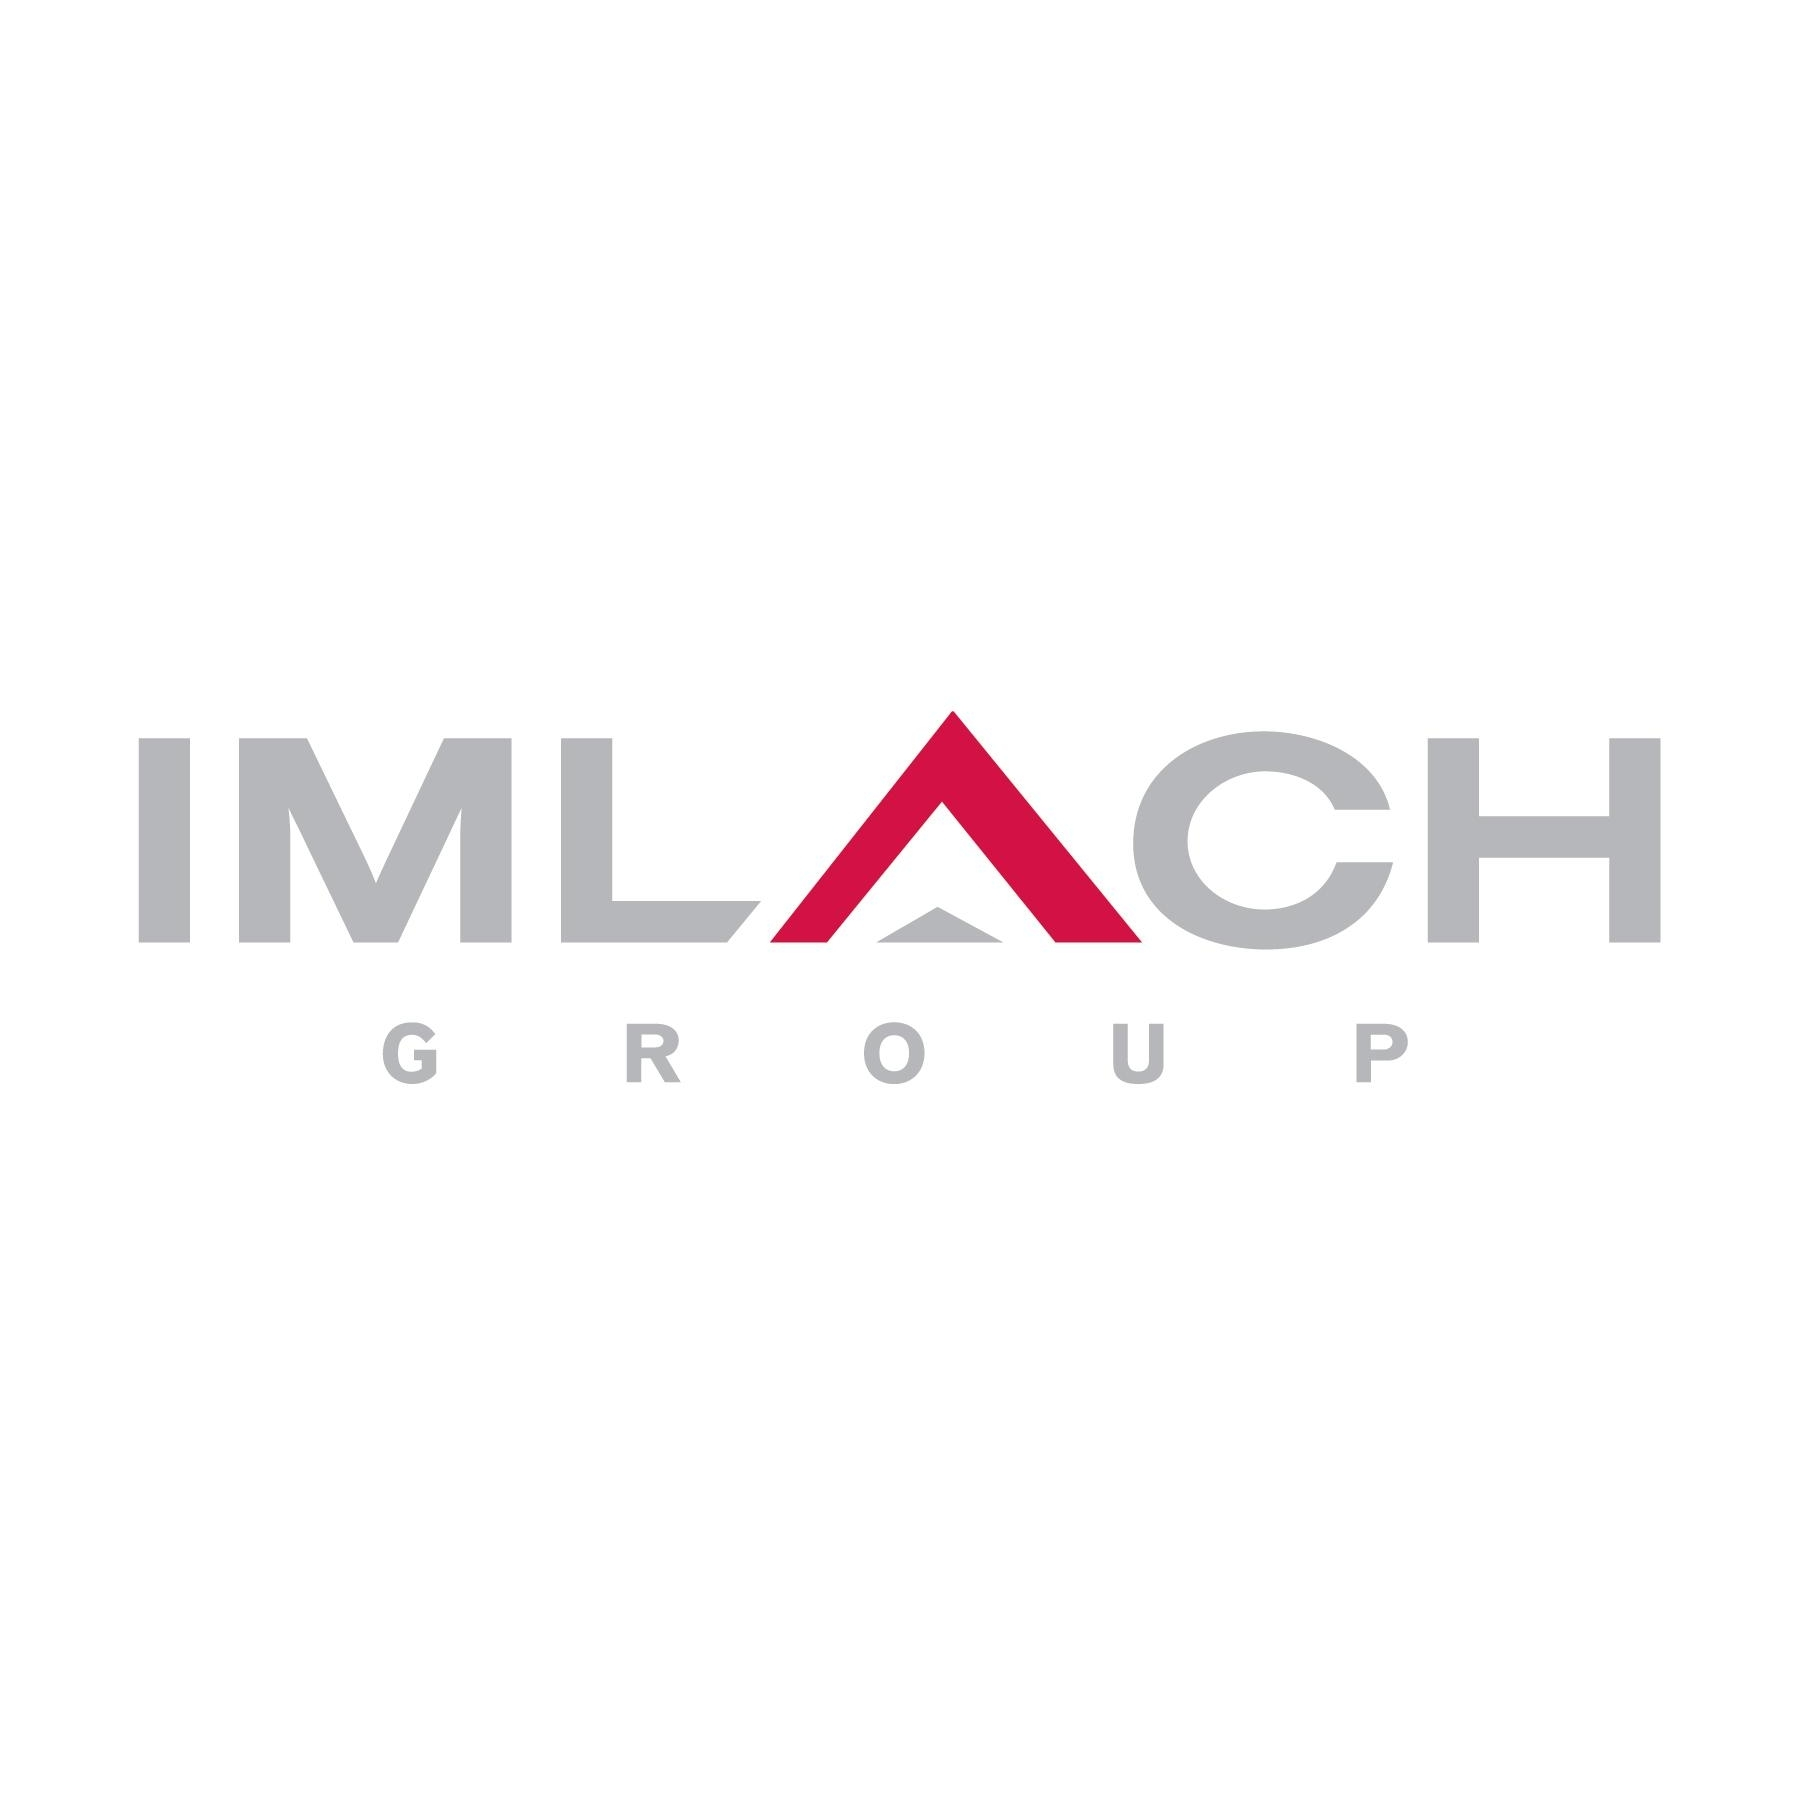 Imlach Group